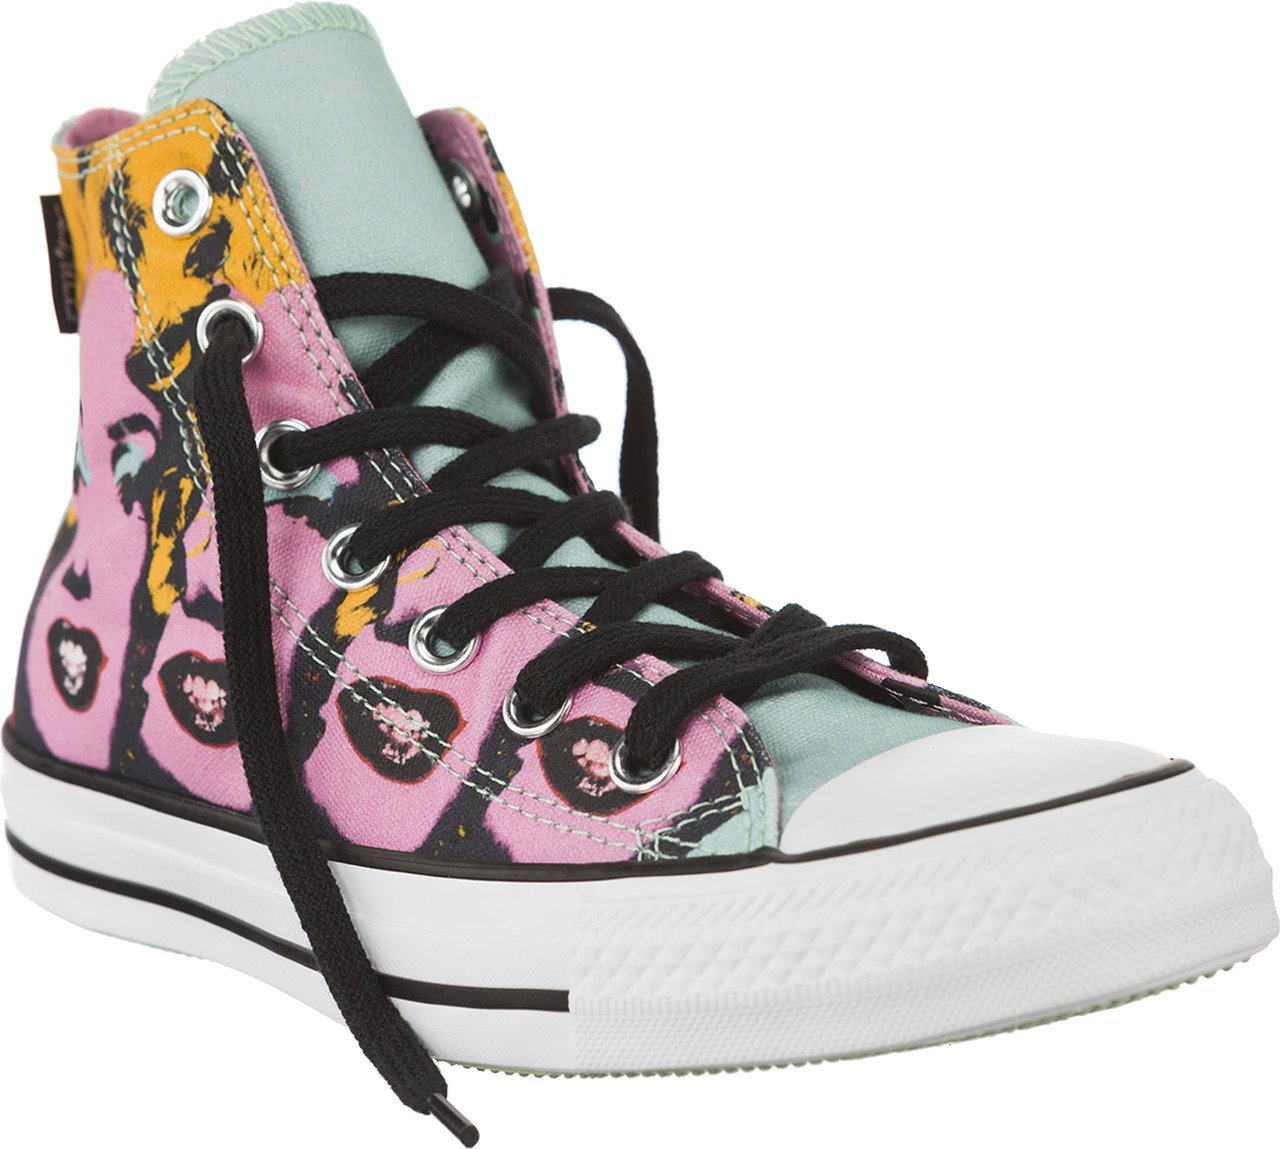 d4f57786a96f Galleon - Converse Unisex Chuck Taylor All Star Andy Warhol Marilyn Monroe  High Top Lichen Orchid Smoke White Sneaker - 7 Men - 9 Women